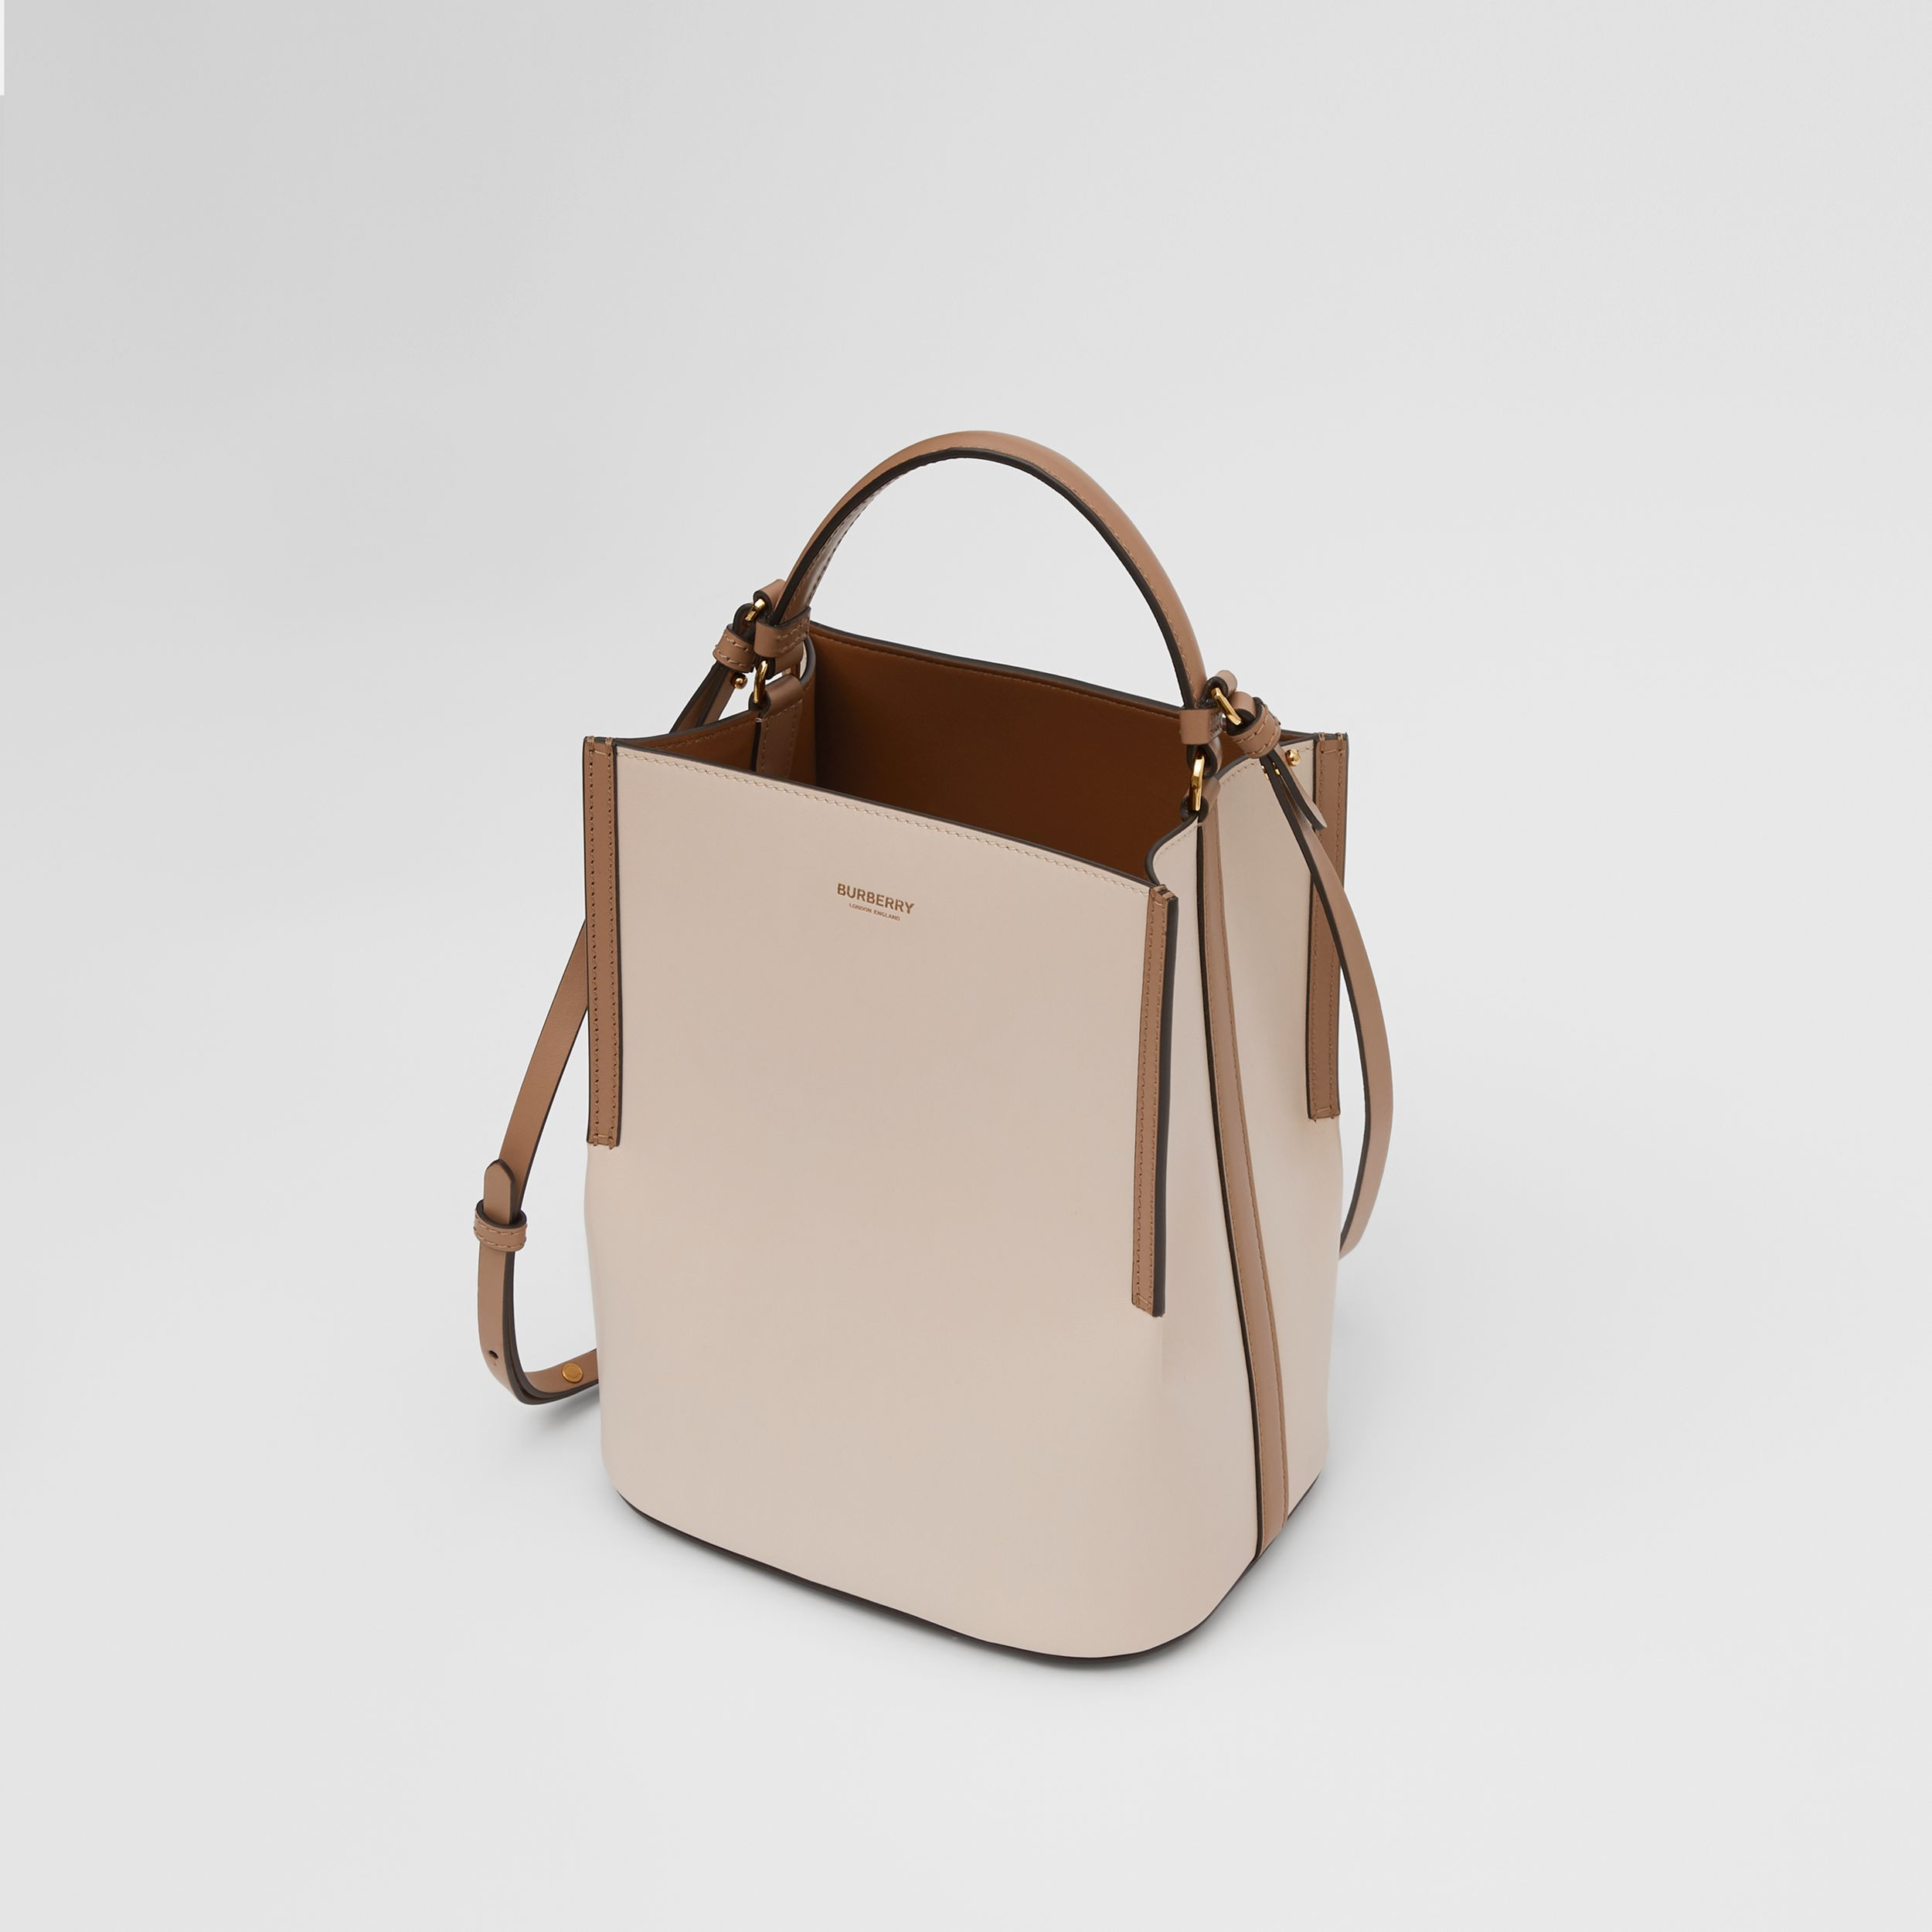 Small Two-tone Leather Peggy Bucket Bag in Buttermilk - Women | Burberry - 4